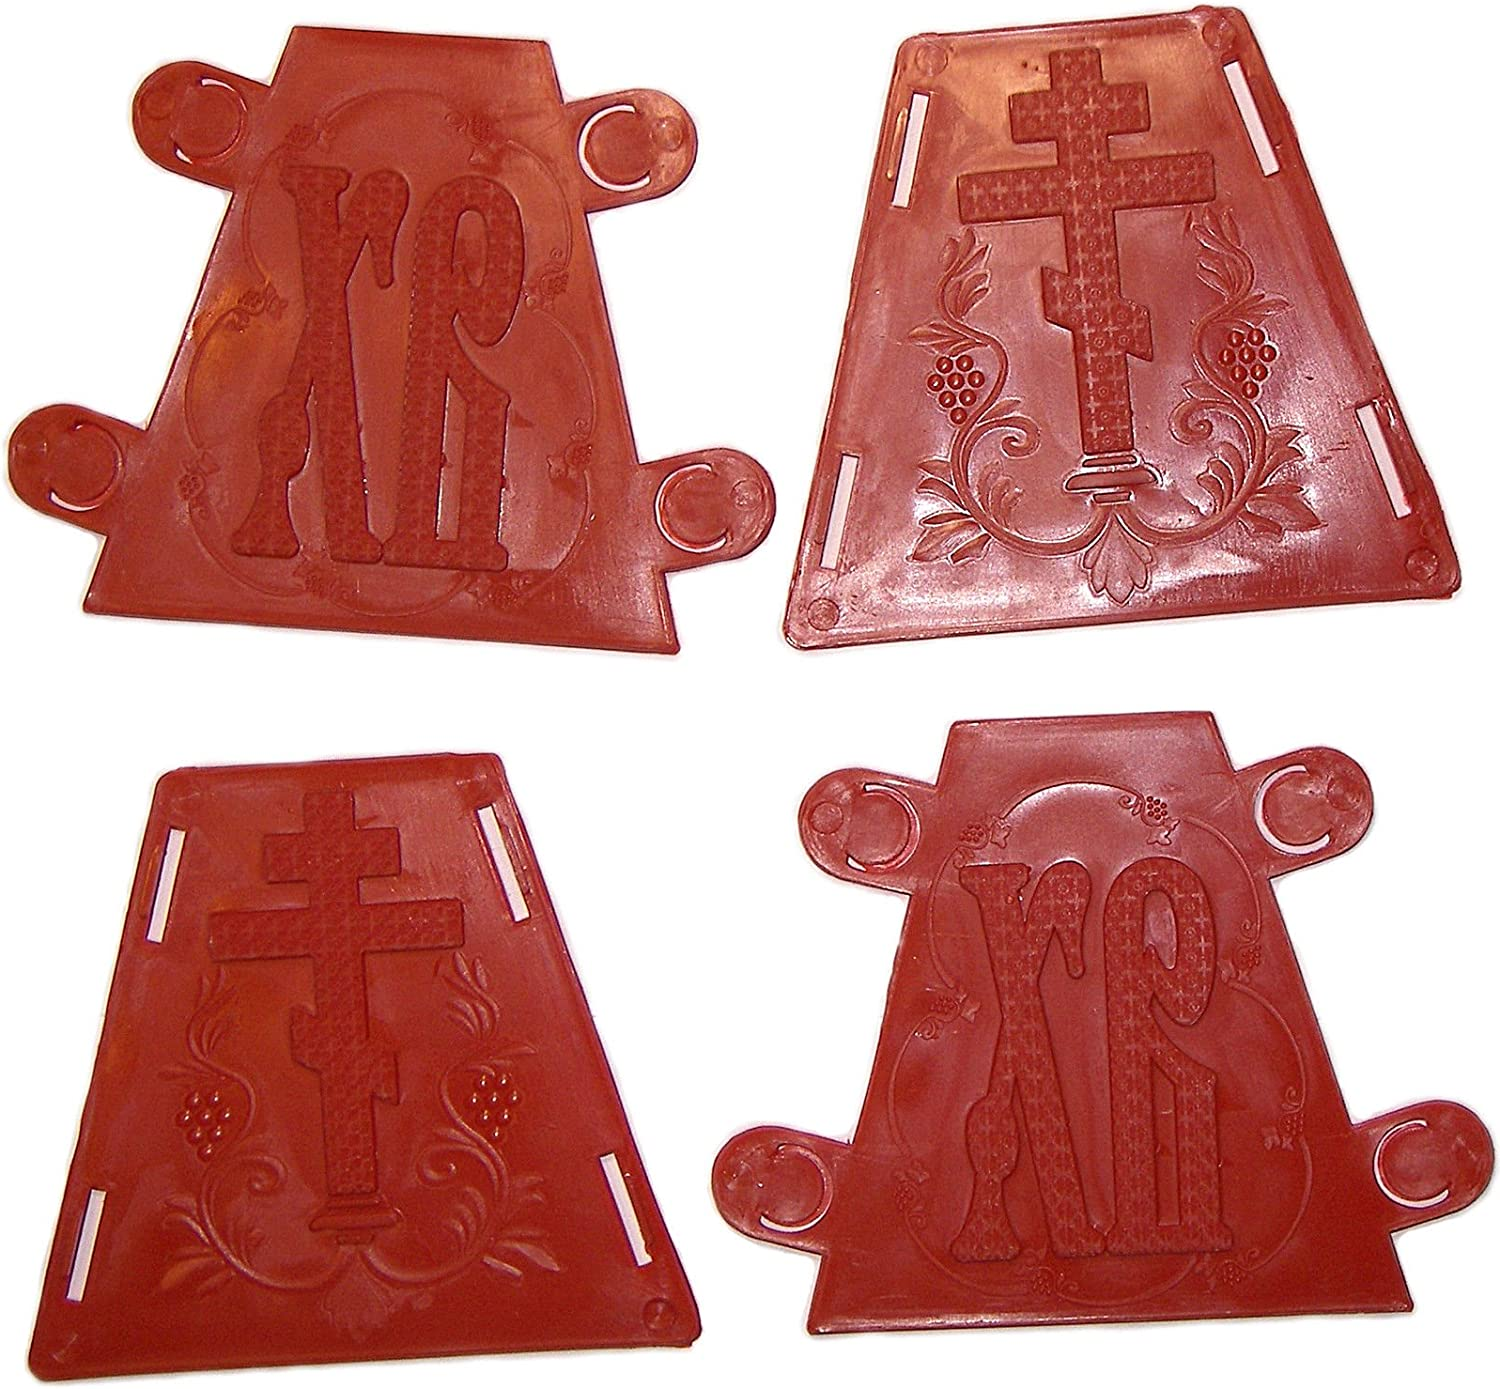 Set 2 Plastic mold Orthodox Easter Cheese Russian Tvorog Paskha Form Hight 4.5 and 6.3